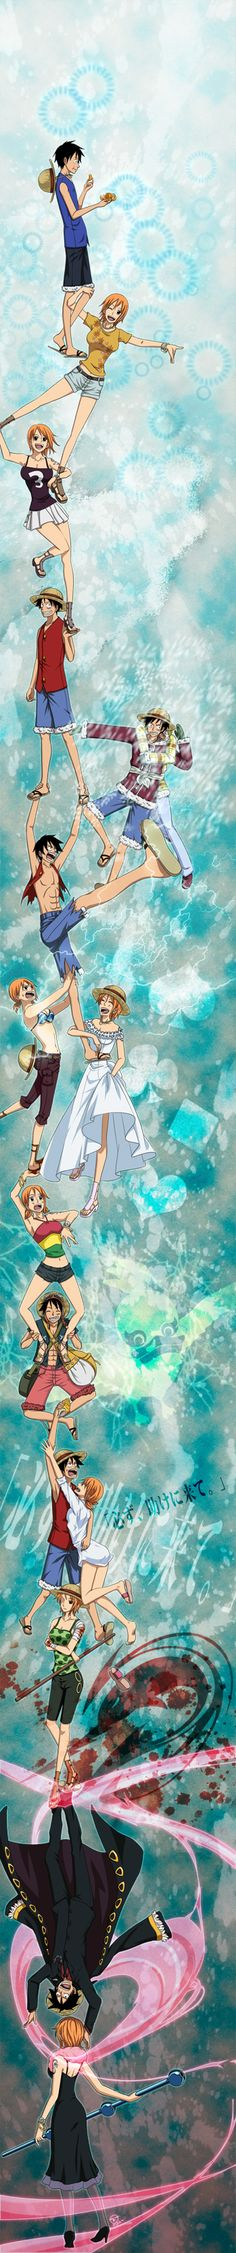 Ending - Trust me - One piece : Luffy & Nami Nami One Piece, One Piece Ship, Luffy X Nami, Fairy Tail Love, The Pirate King, One Piece Pictures, One Piece Fanart, Monkey D Luffy, Durarara